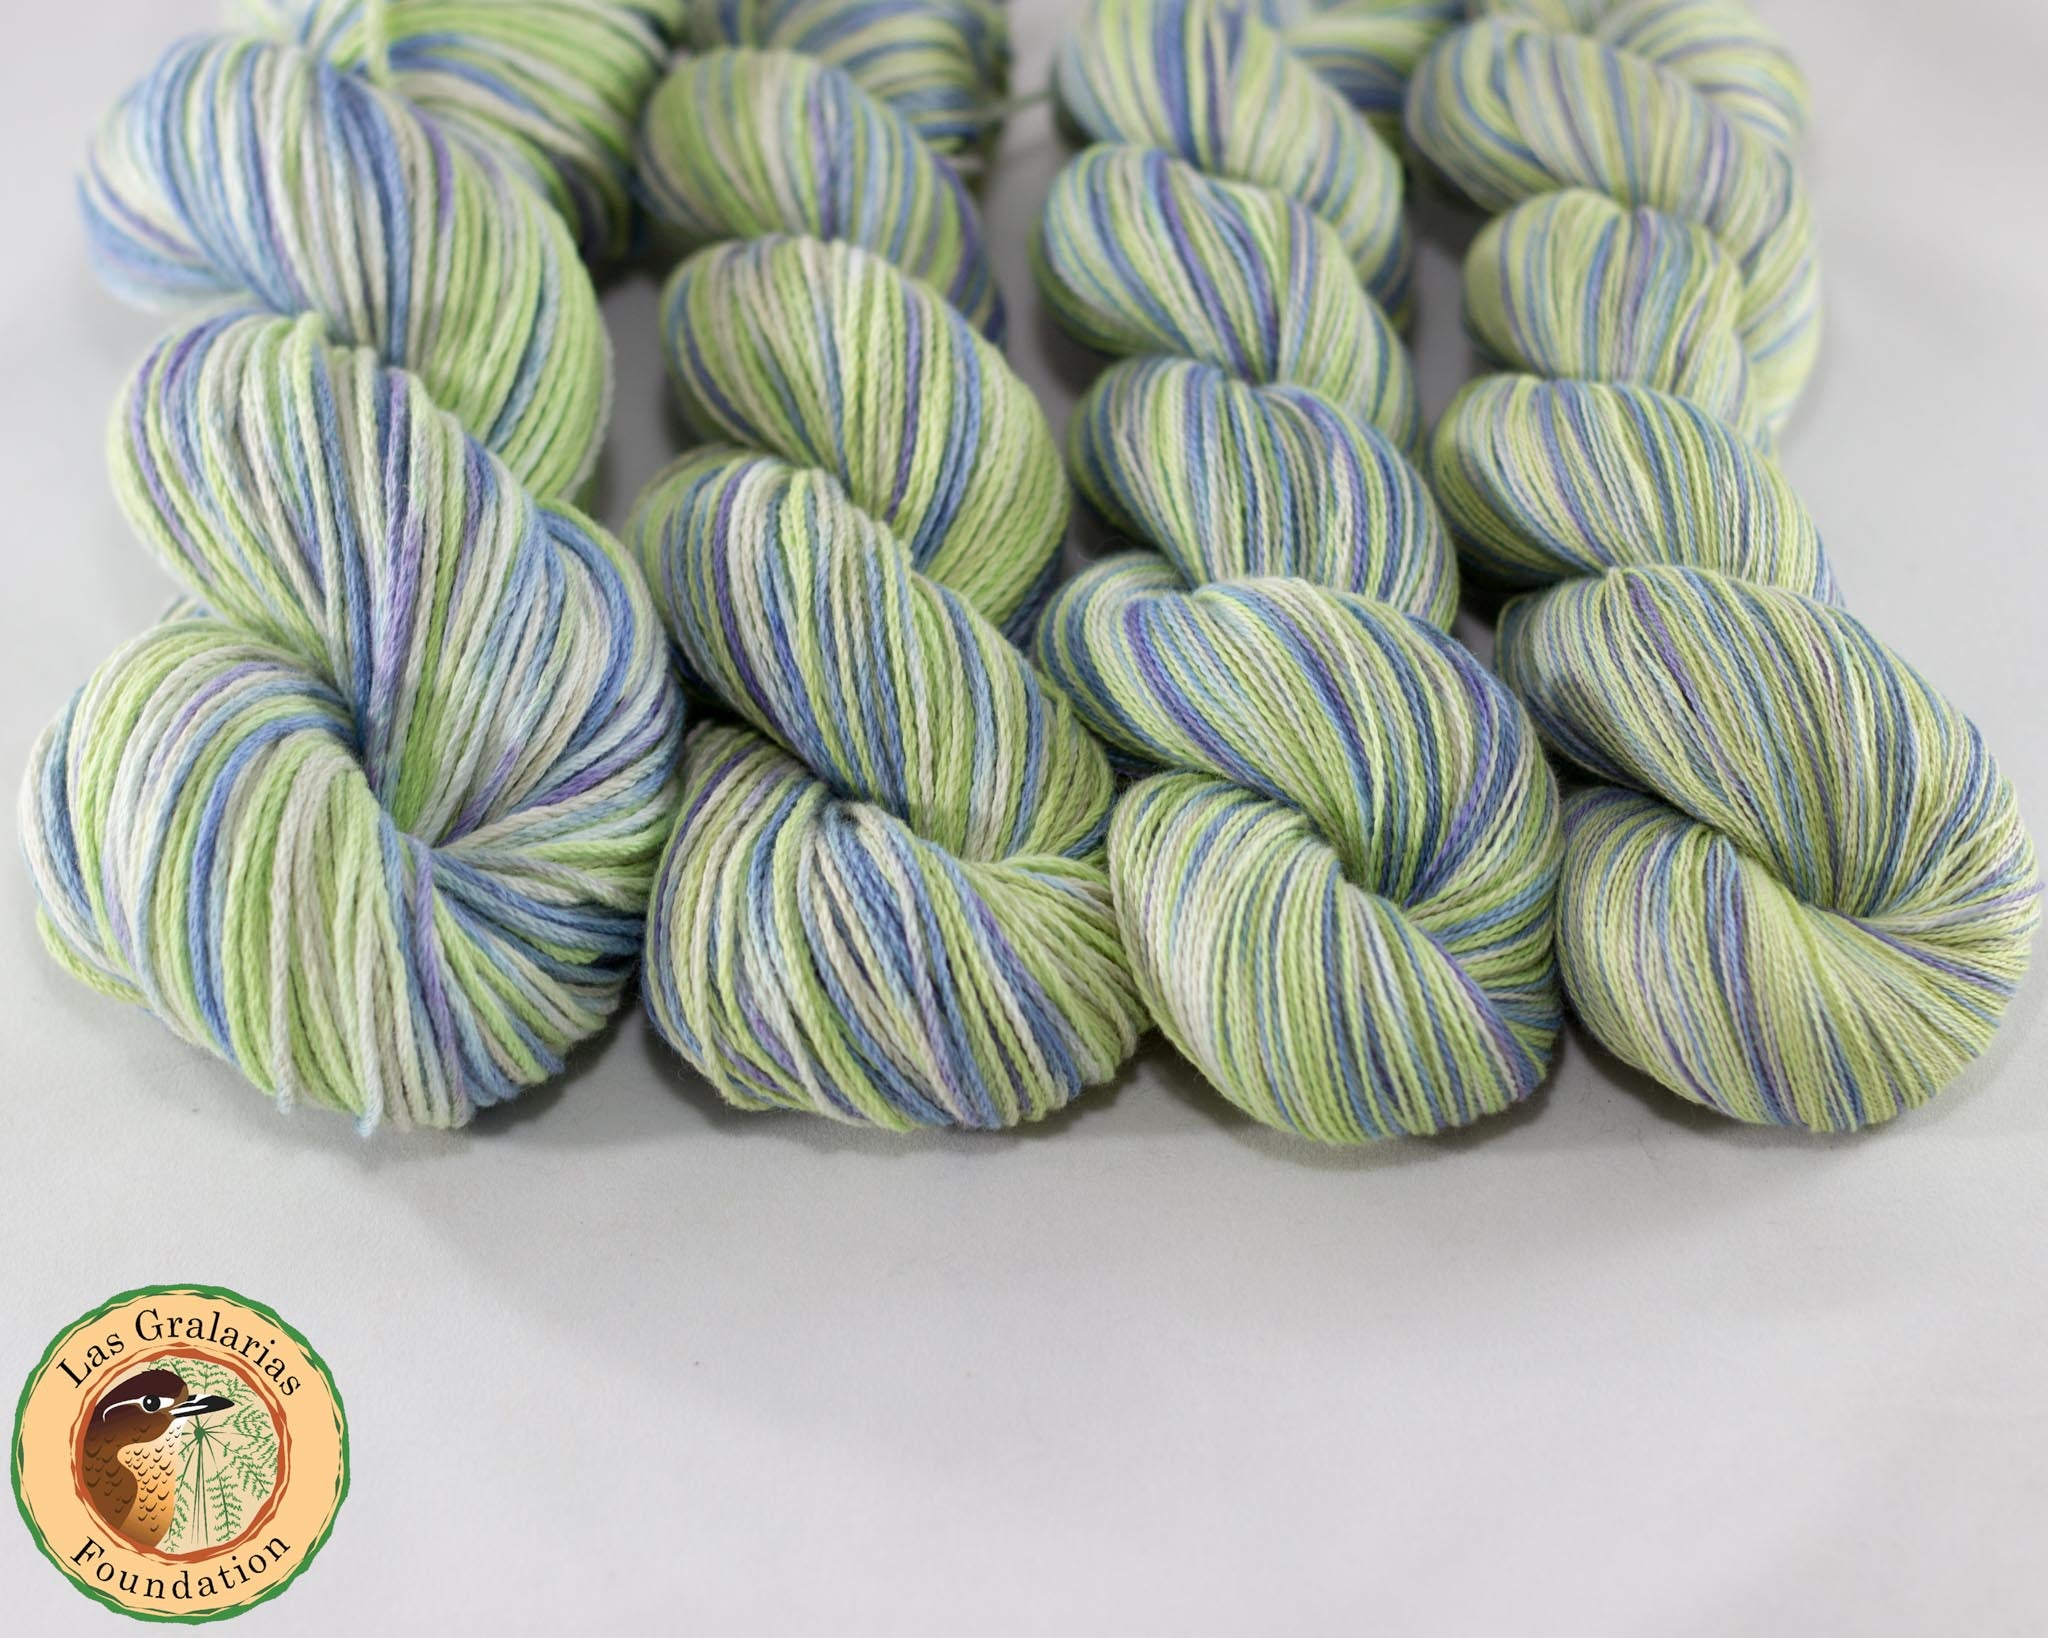 Cotton Yarn, Moonlit Glassfrog - Buchanan Fiber Co.